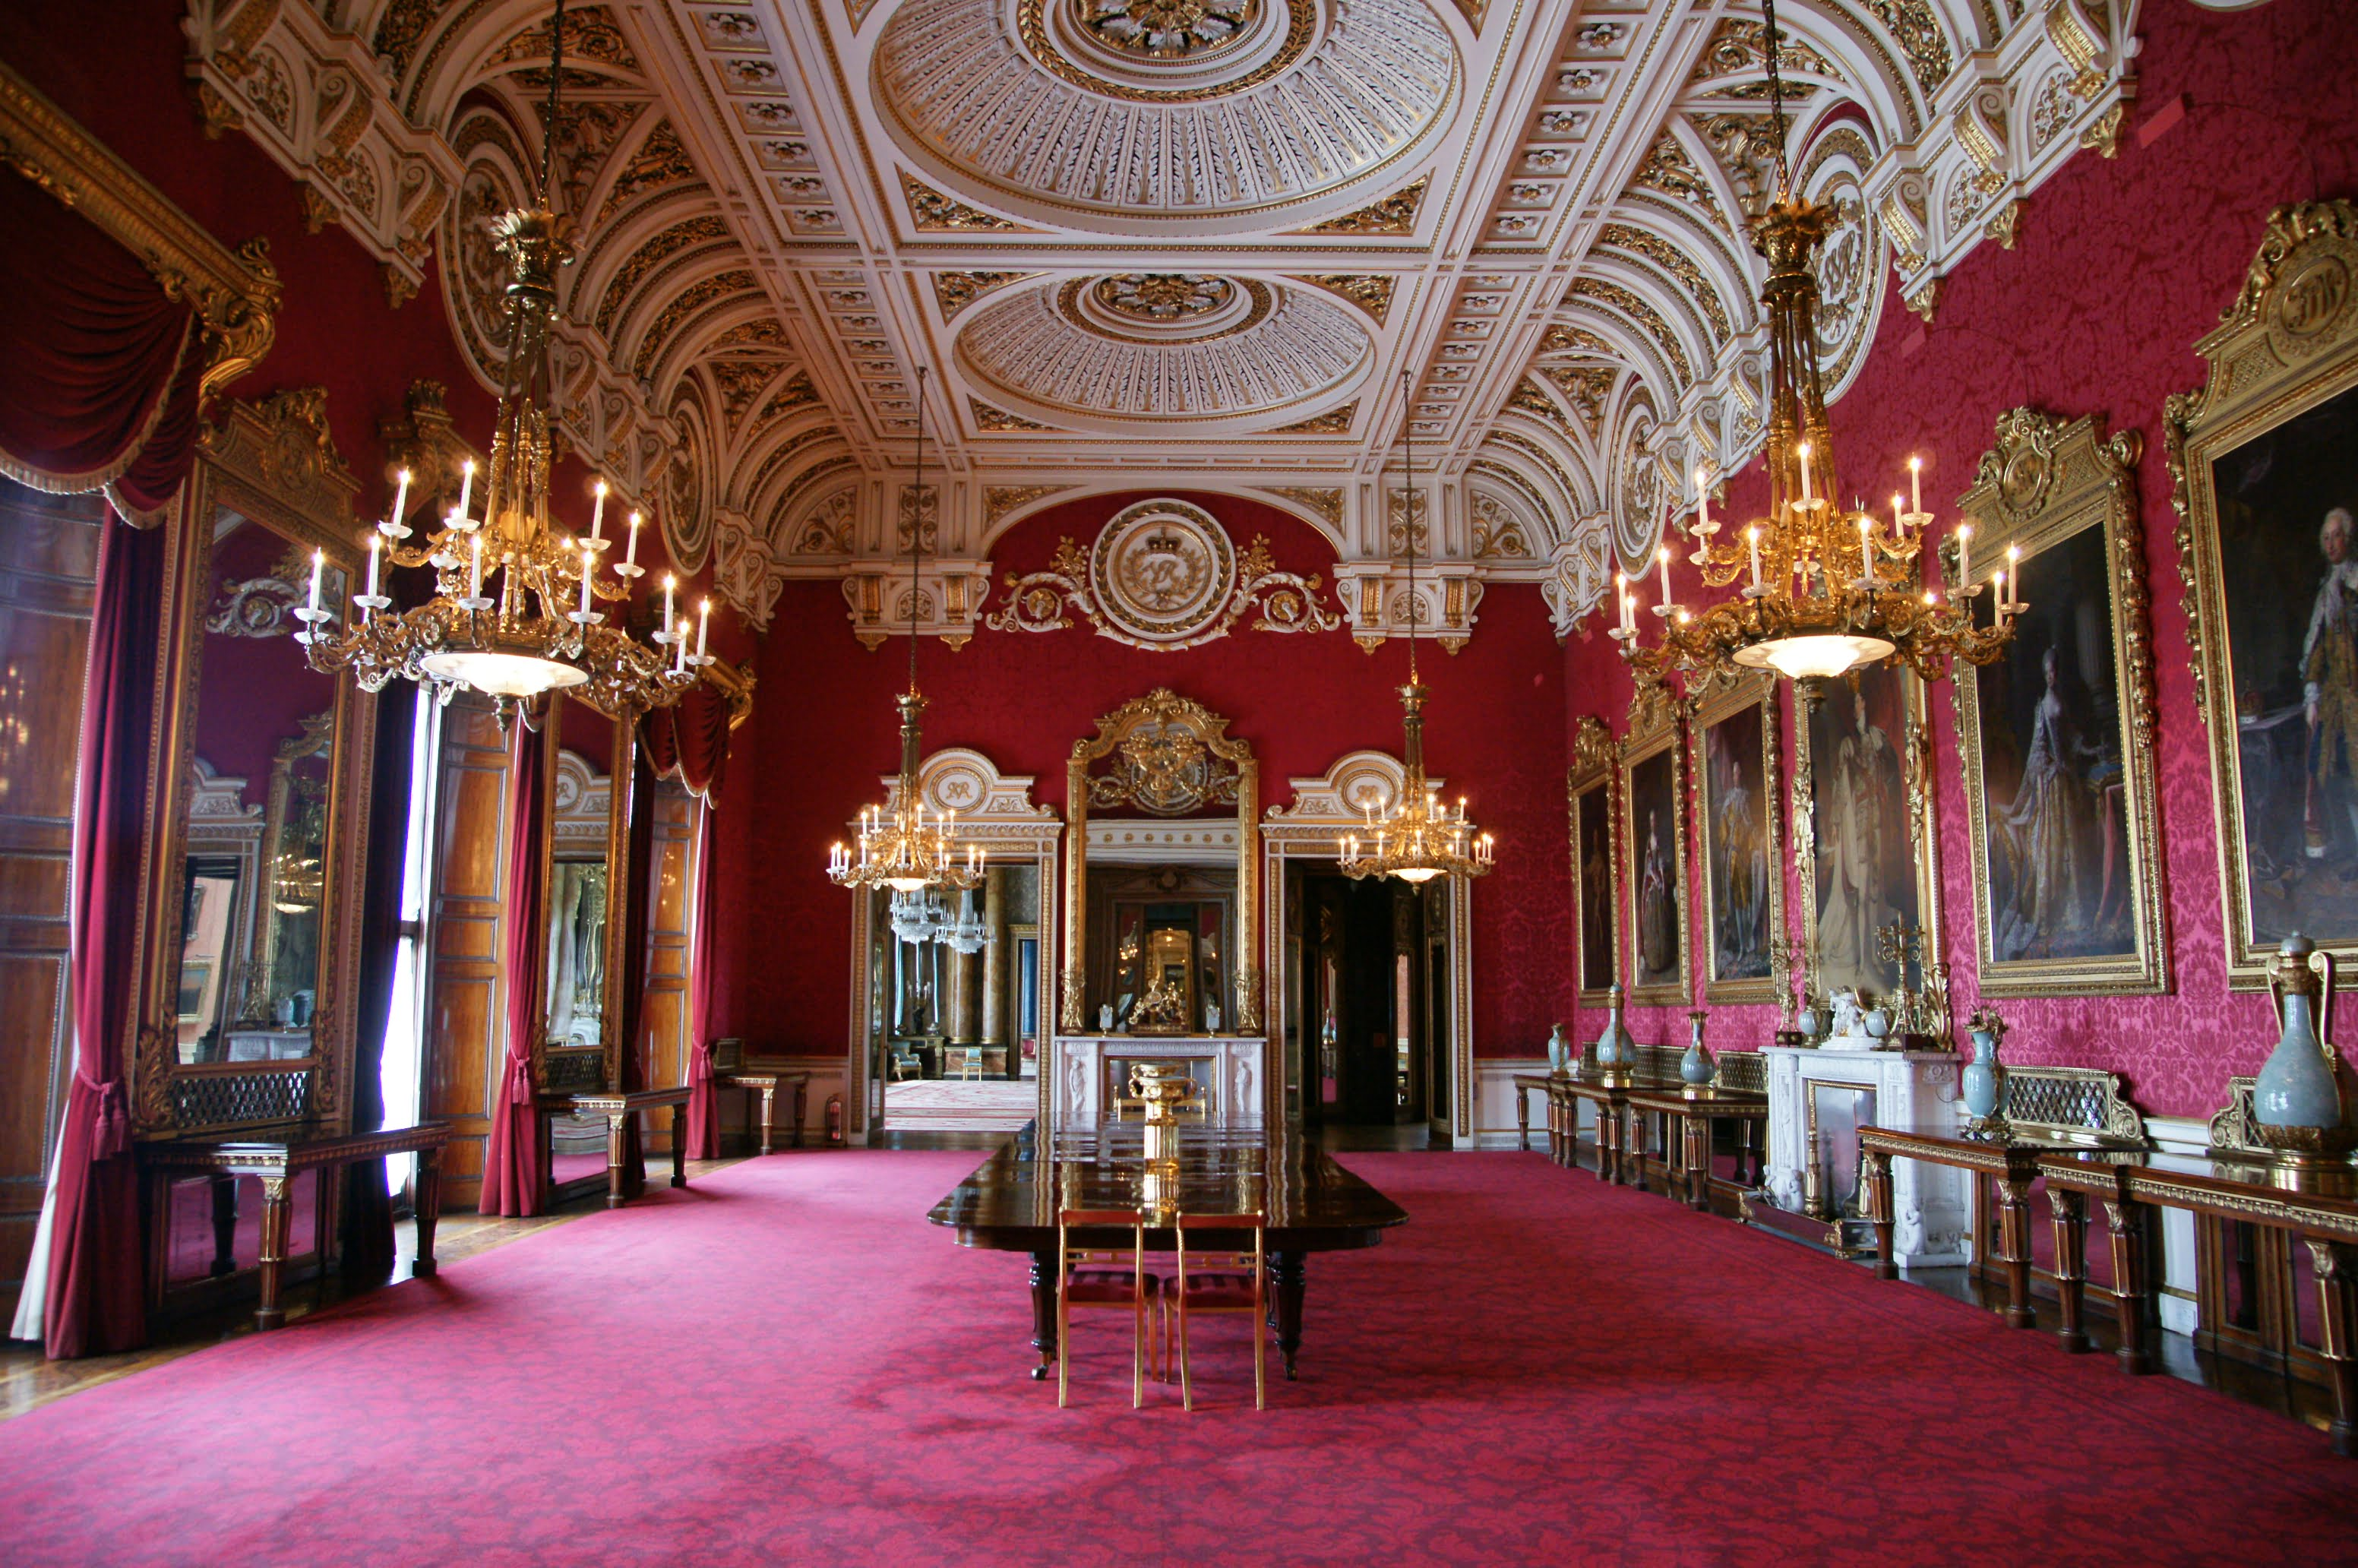 Buckingham Palace The State Dining Room is used by The Queen for official entertain